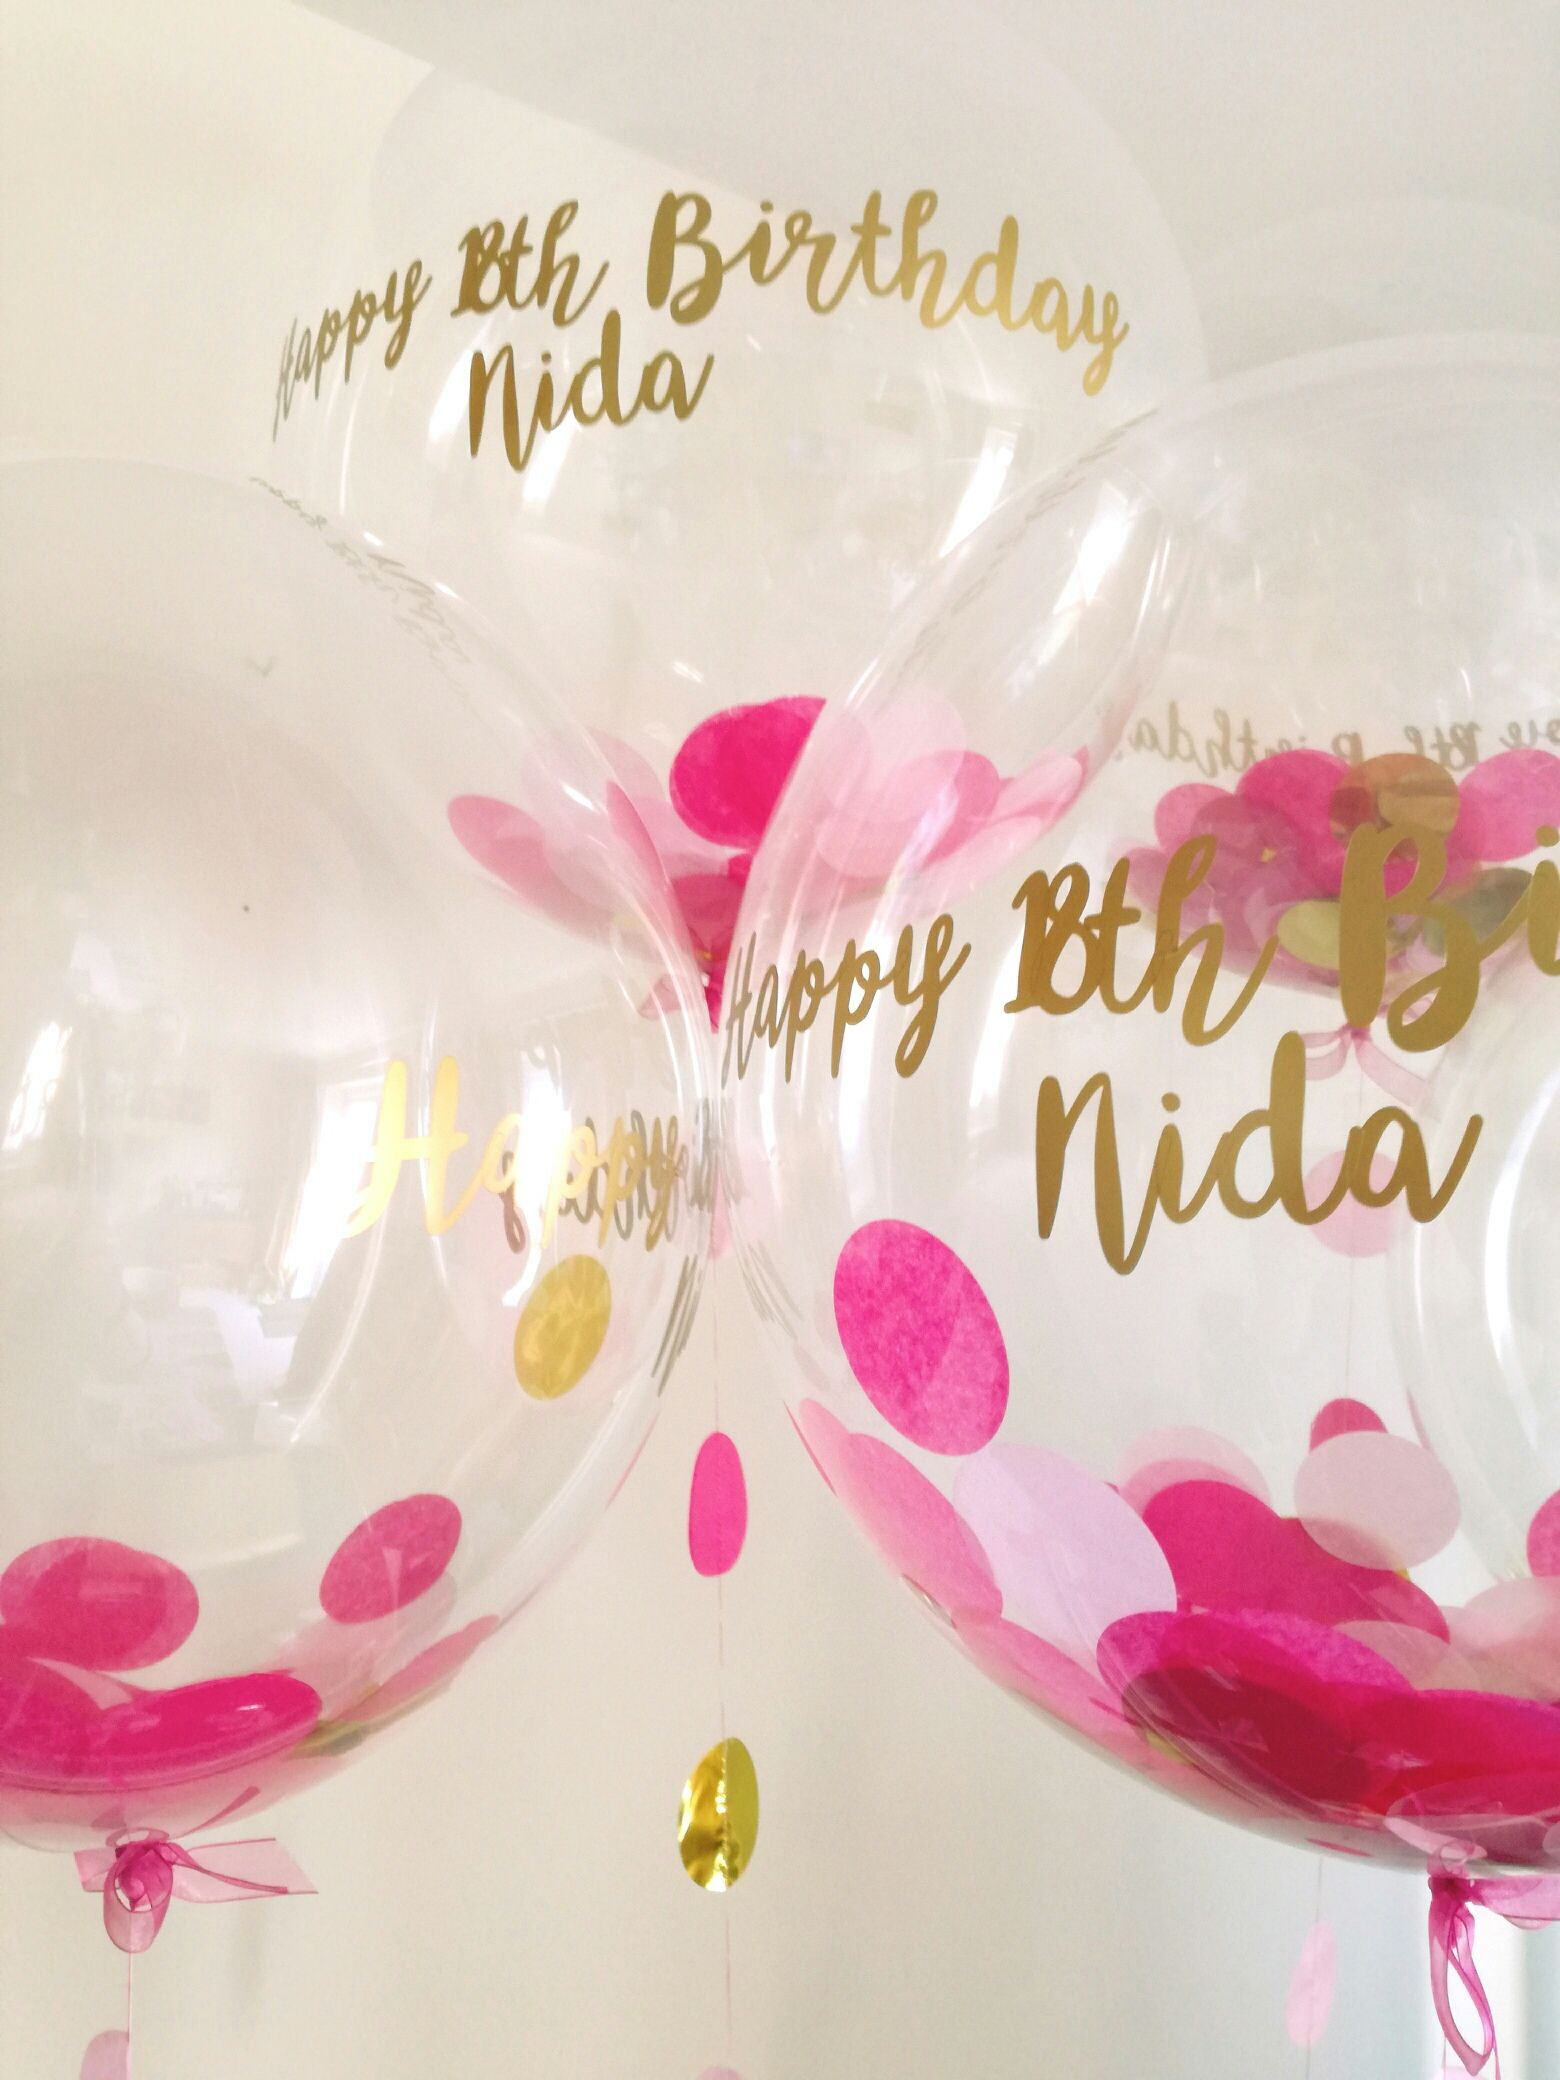 Personalised Rose Pink And Gold Confetti Balloon With 18Th Birthday Gold Writing, Available From The Feather Balloon Company Website  Pinterest -8259